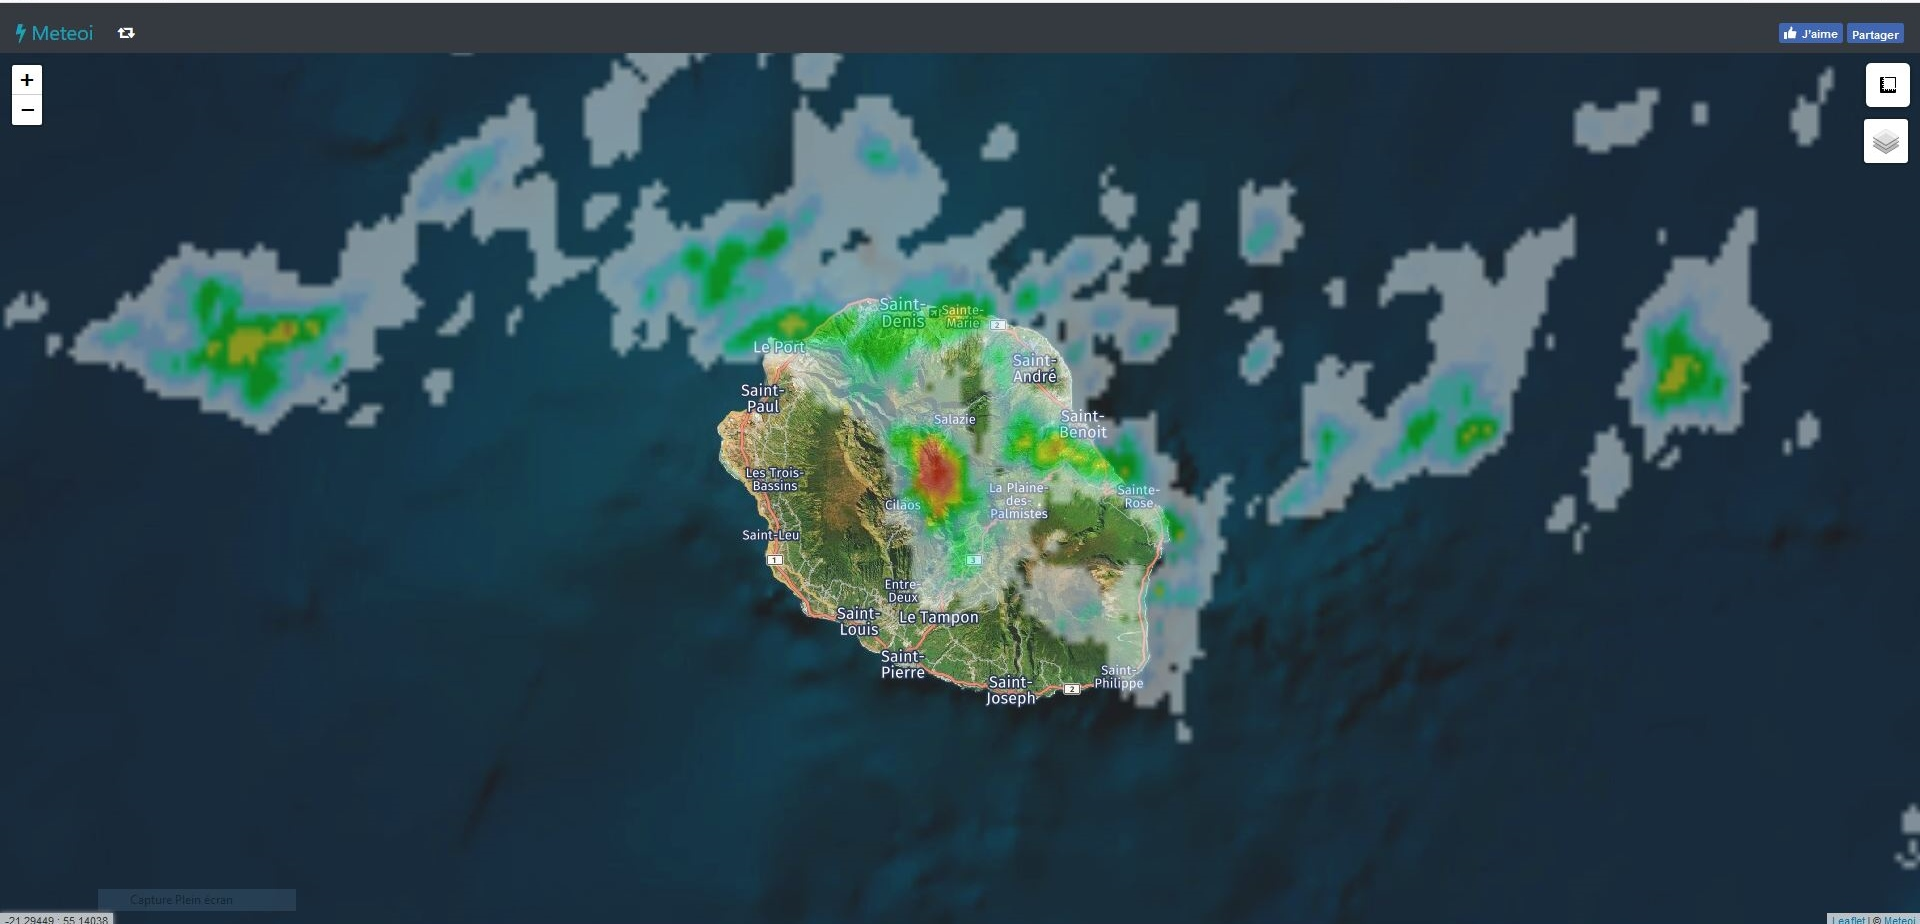 Image radar de 11h55. https://www.meteoi.re/